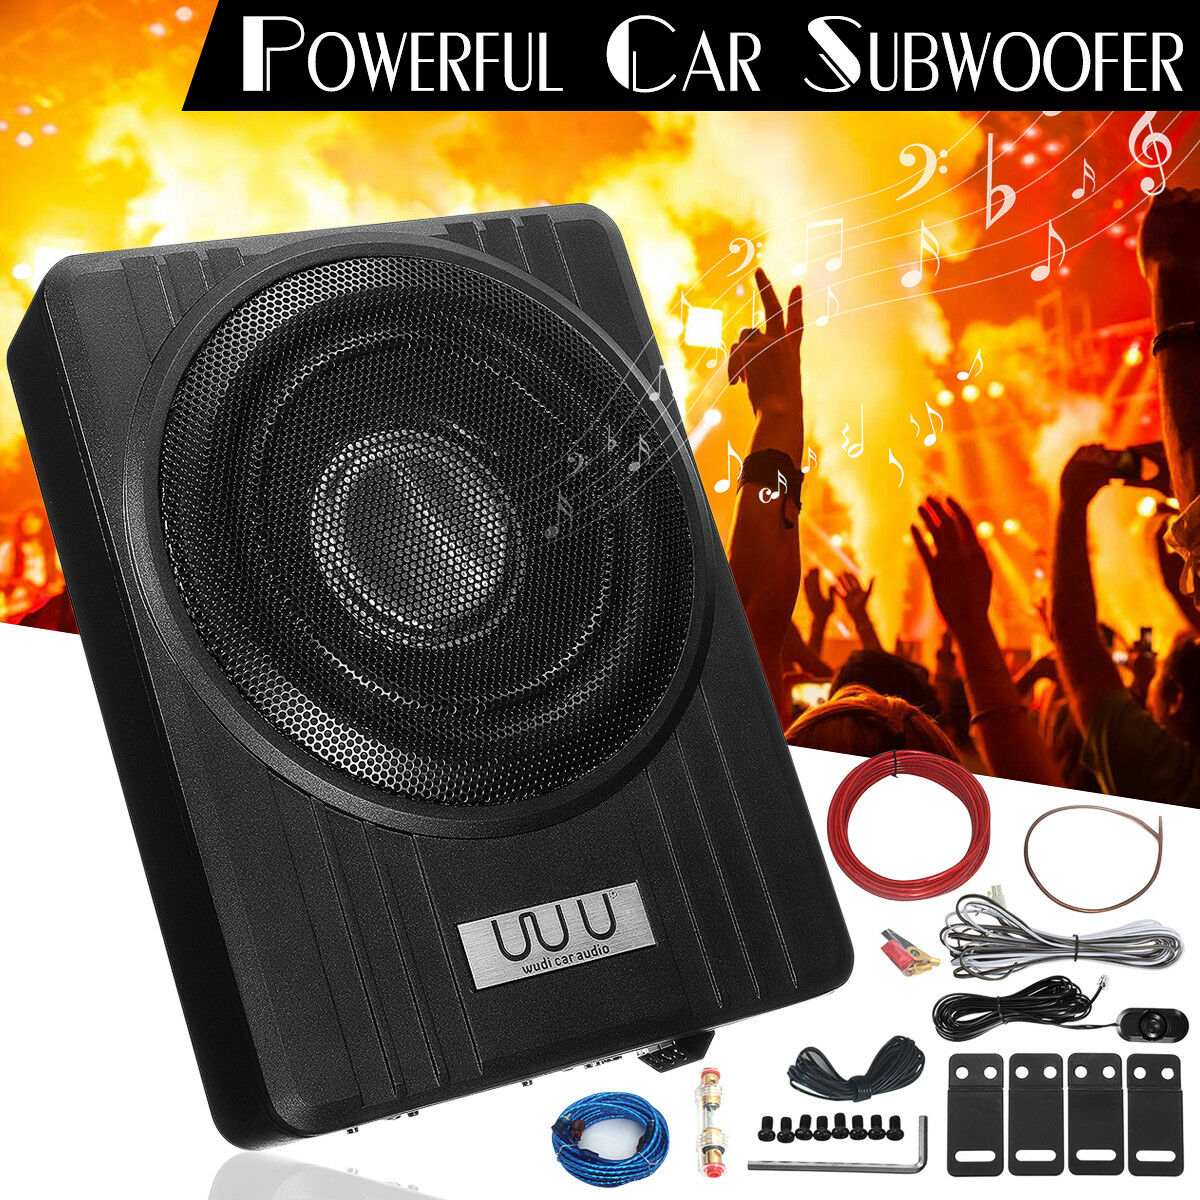 Amplifier 2 12quot Subwoofers Free Amp Wire Kit 4 Channel Wiring For And An 10 600w Car Slim Under Seat Audio Powered Subwoofer